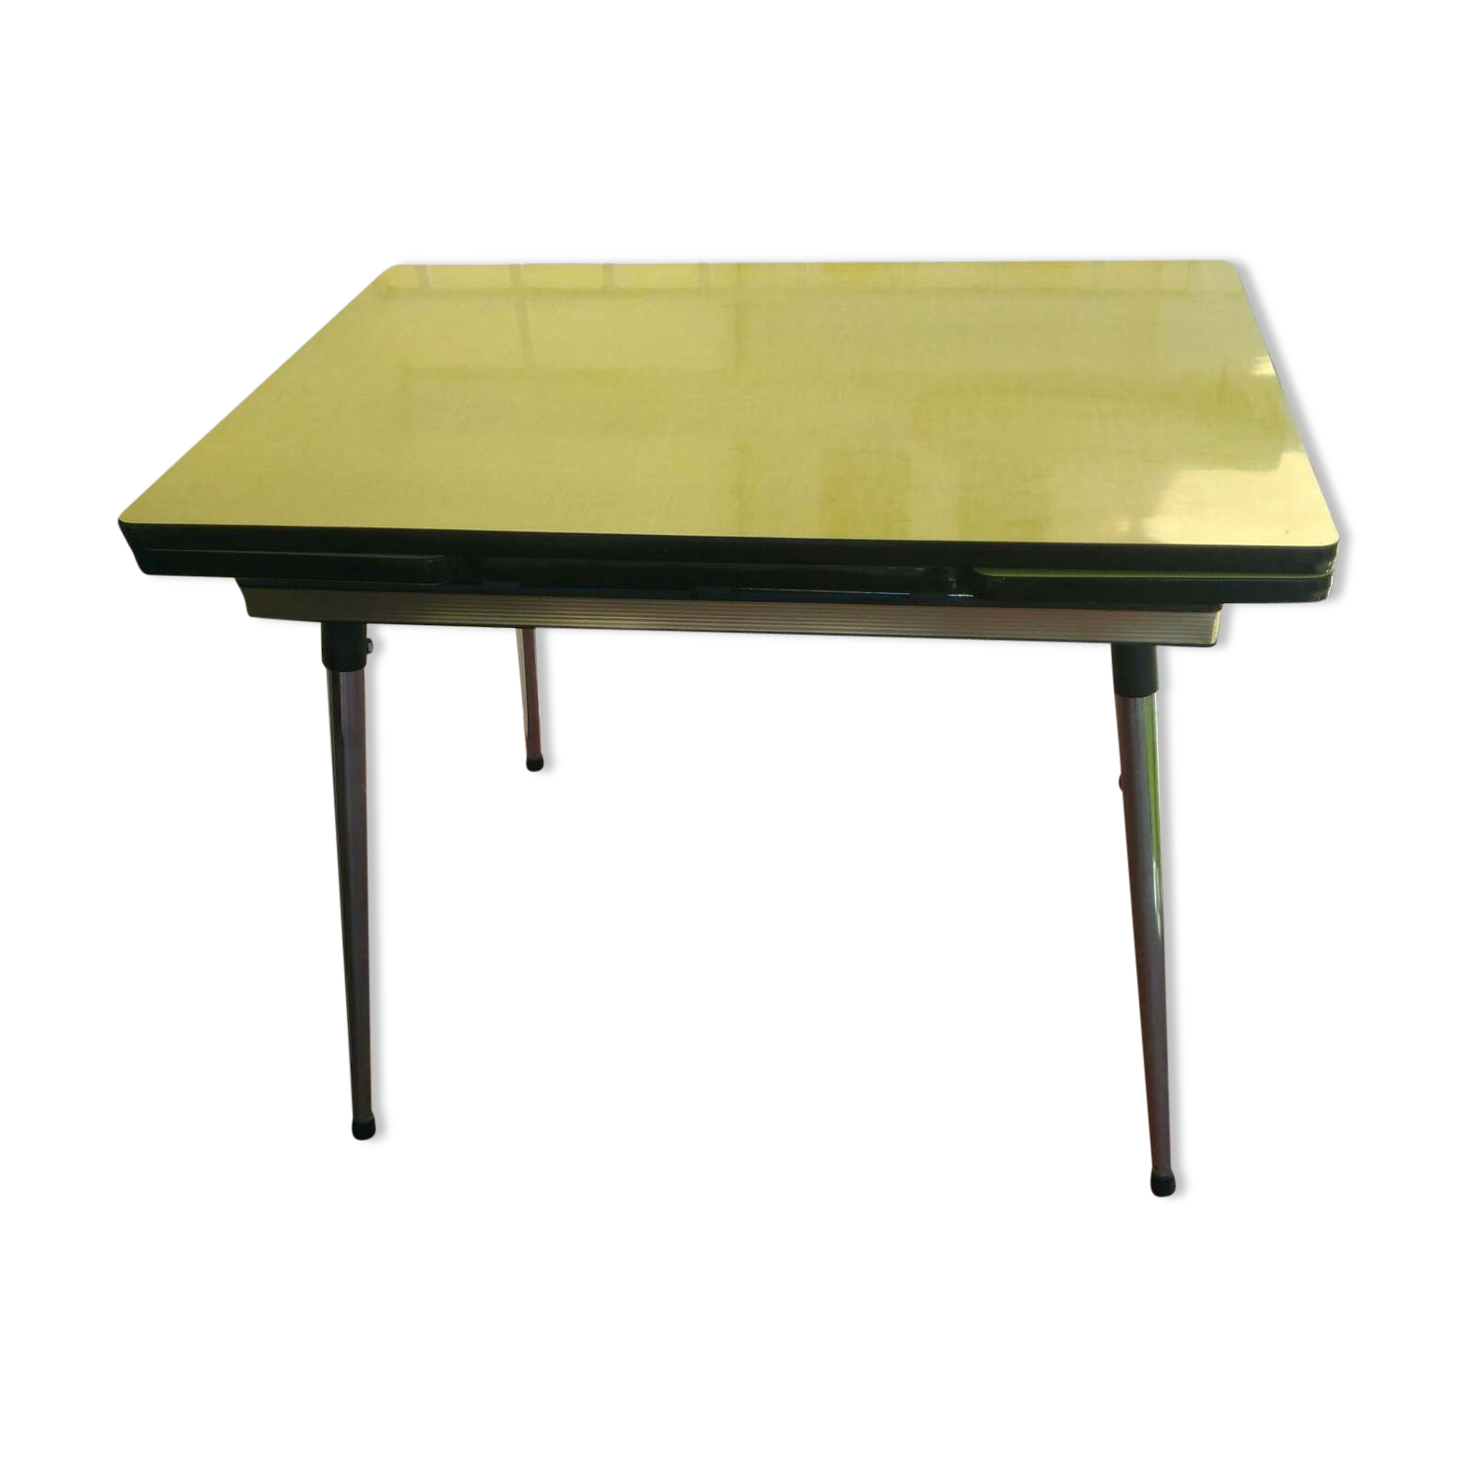 Table De Cuisine Formica Simple Table De Cuisine Pliable